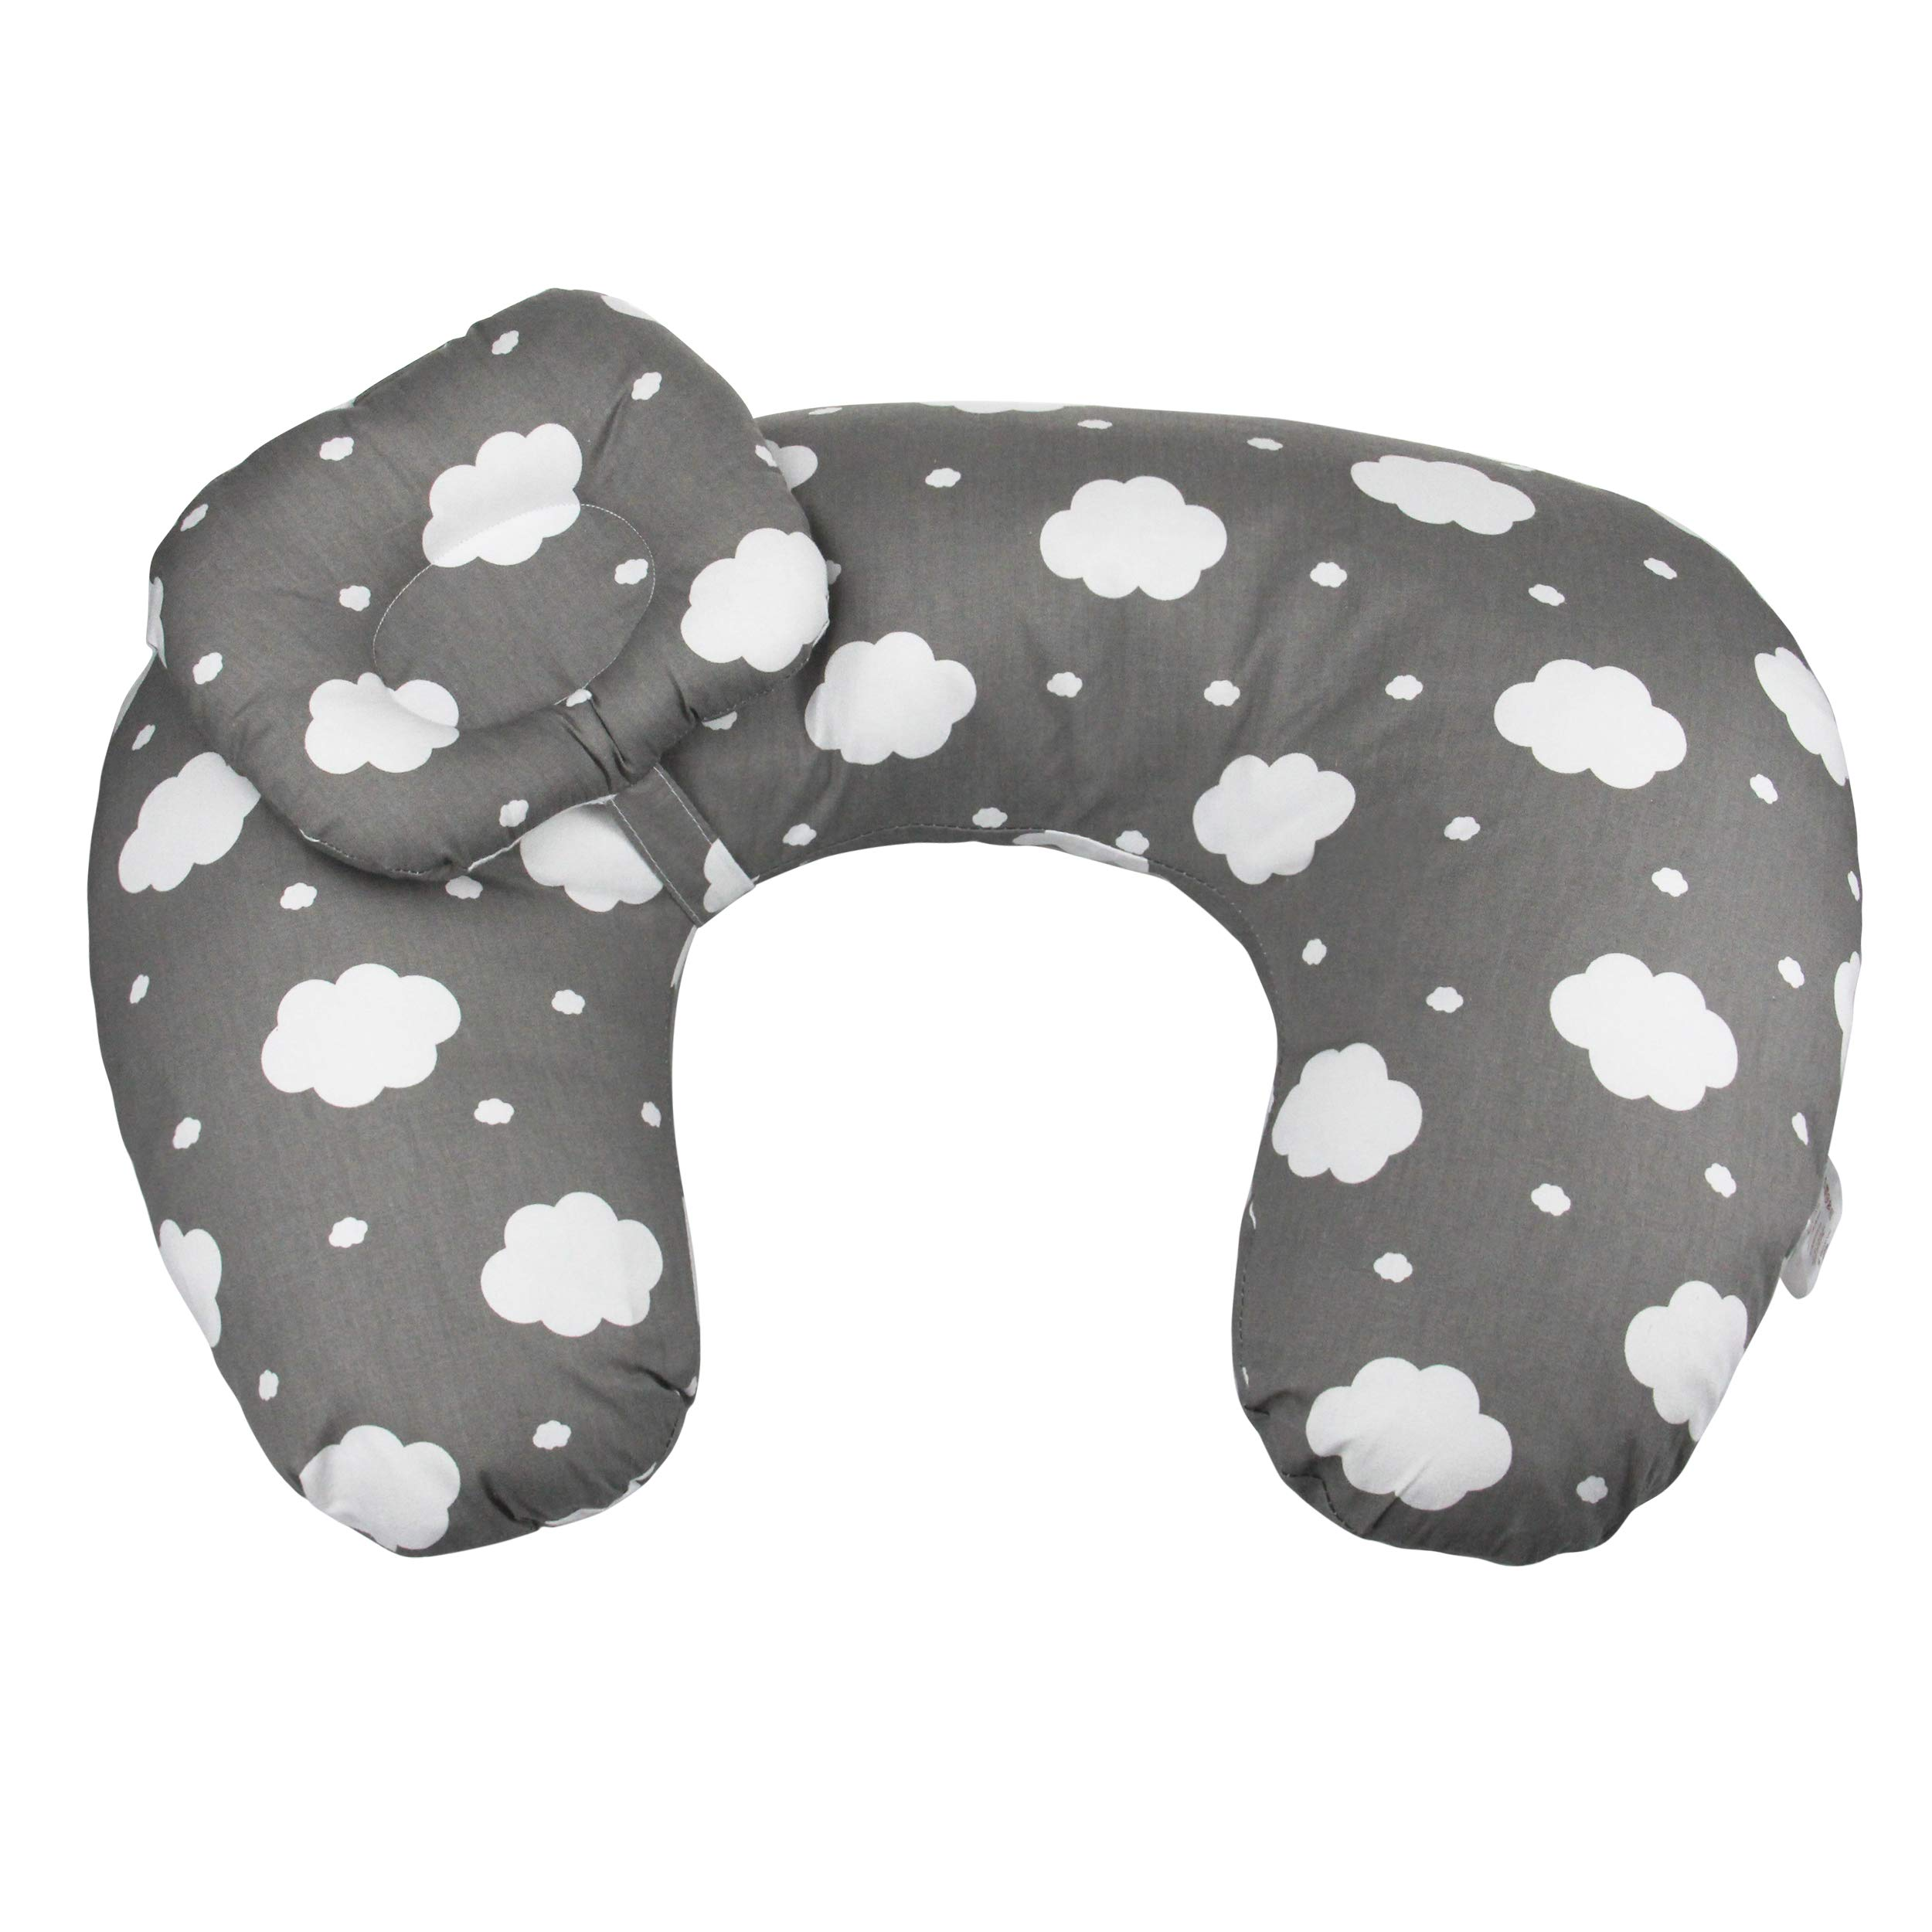 ERISDOO Baby Nursing Pillow for Breastfeeding- Round Pillow for Newborn and Infant - Portable Firm and Comfy- Newborn Lounger and Positioner - Great for Posture and Feeding (Cloud) by ERISDOO